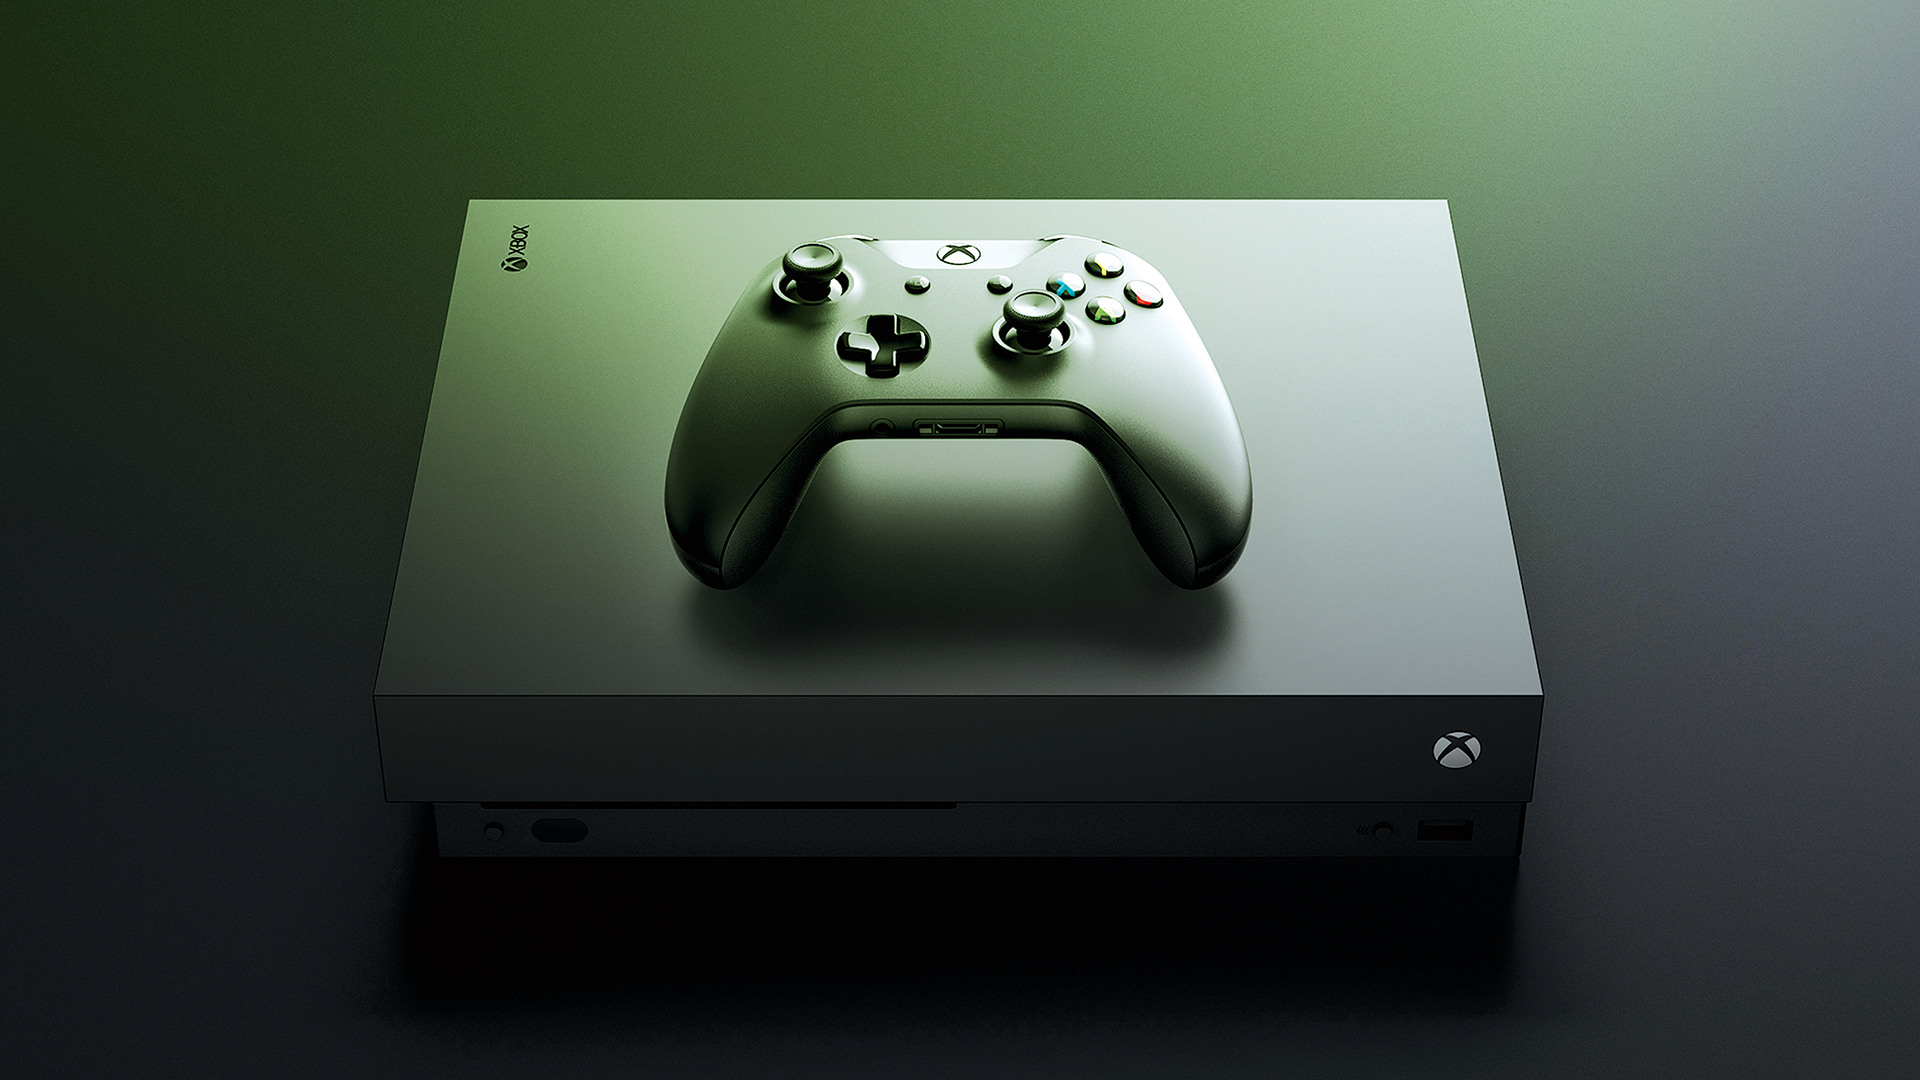 45 Xbox One tips and tricks to get more from your console | GamesRadar+